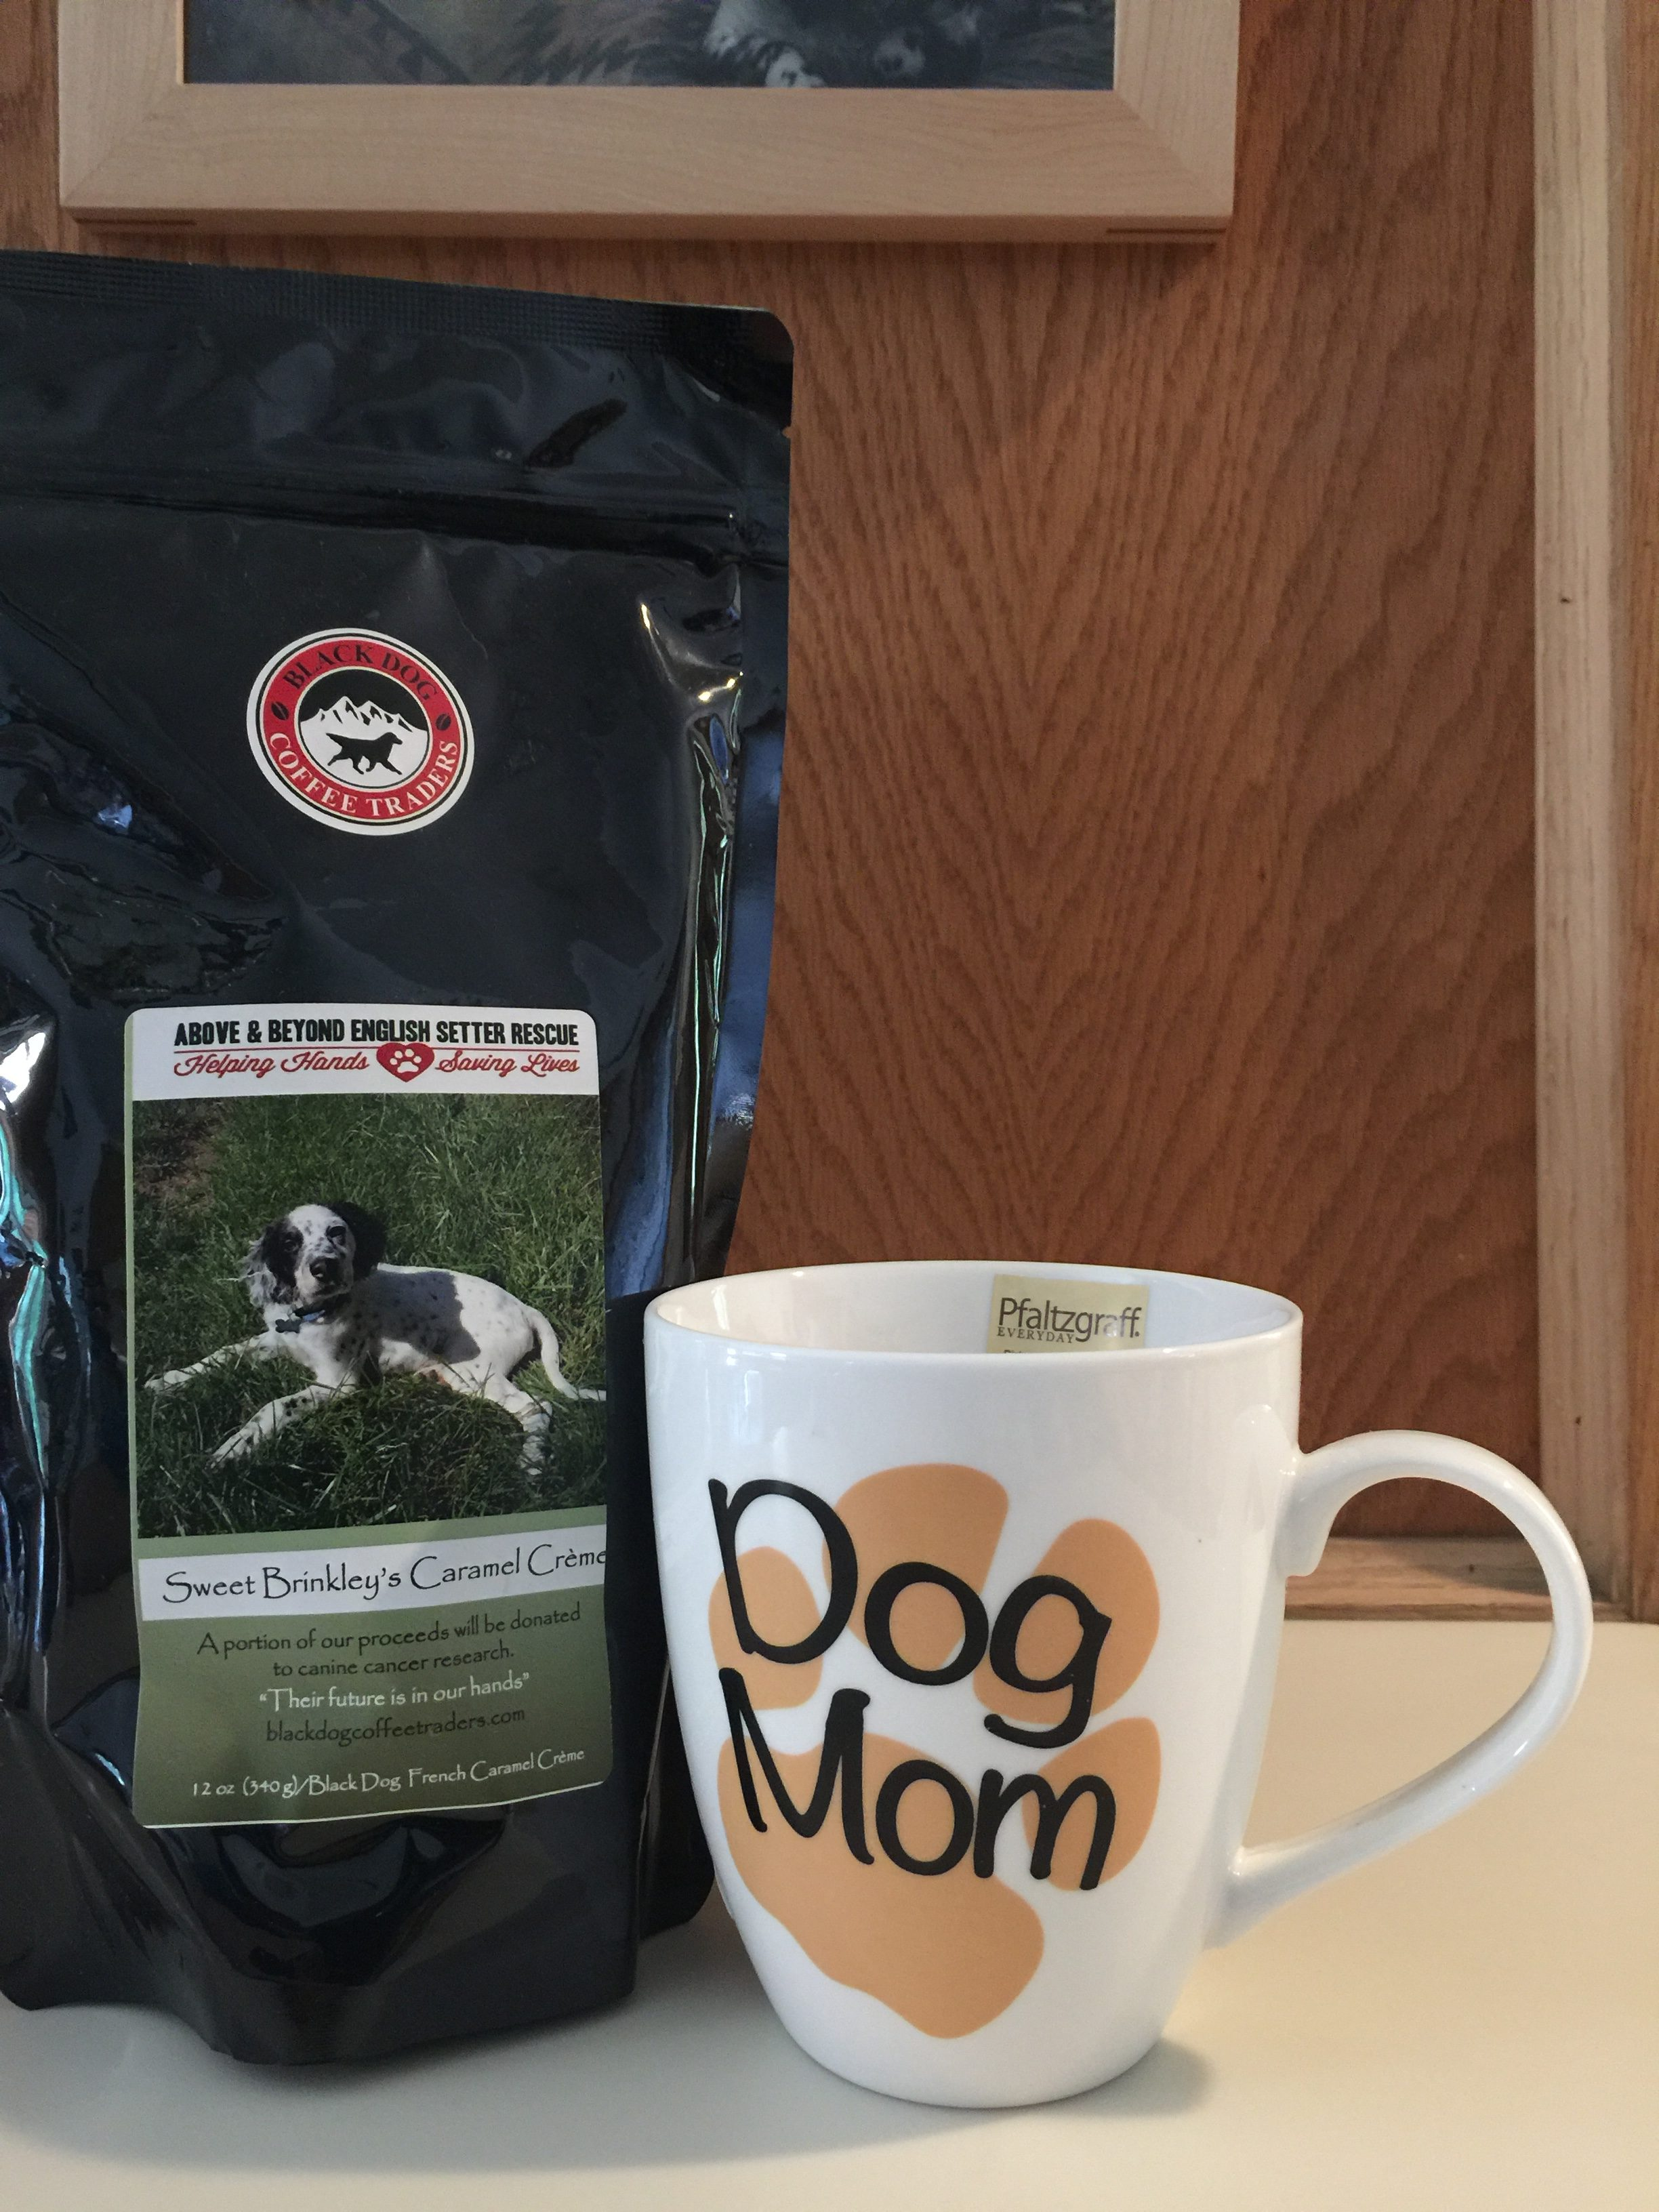 One Dollar Raffle Items Above And Beyond English Setter